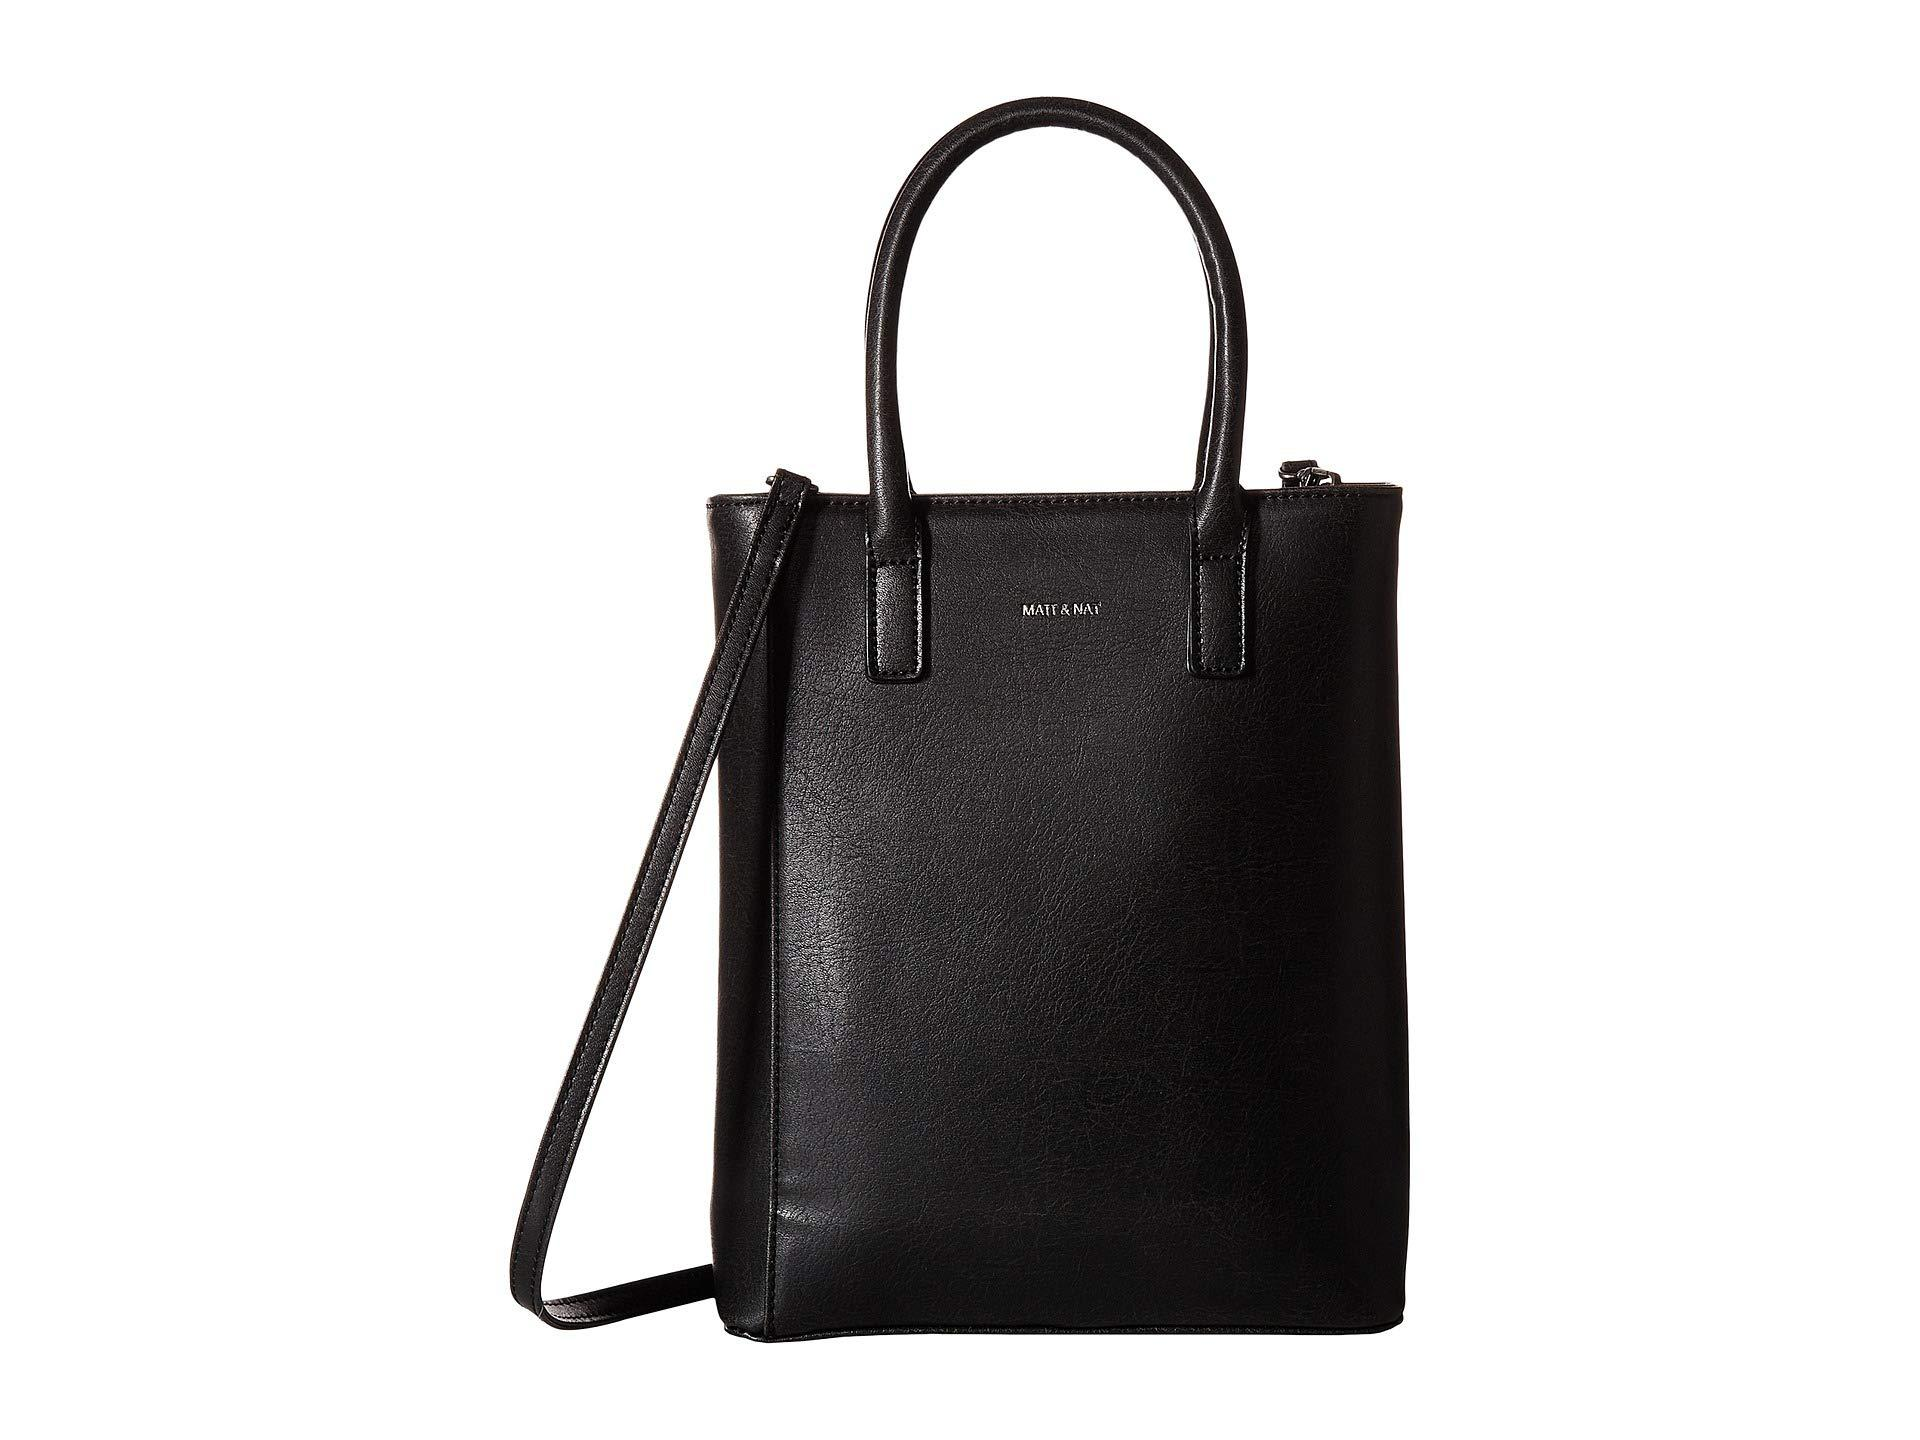 096b0866b19 Lyst - Matt & Nat Pinot (frappe) Bags in Black